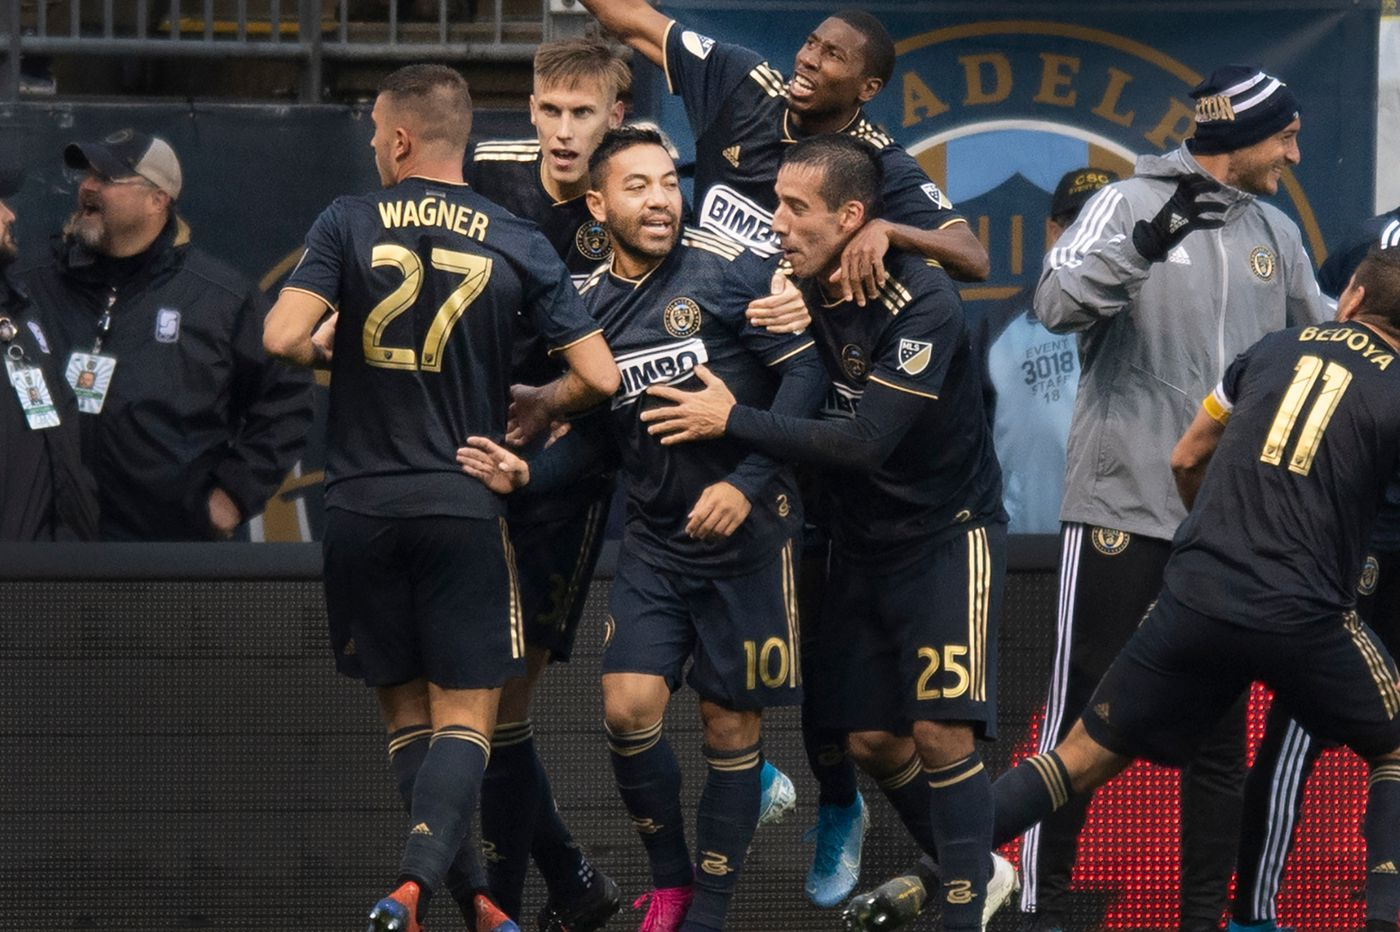 Marco Fabián's goal gives Union 4-3 win over New York Red Bulls, first playoff win in team history